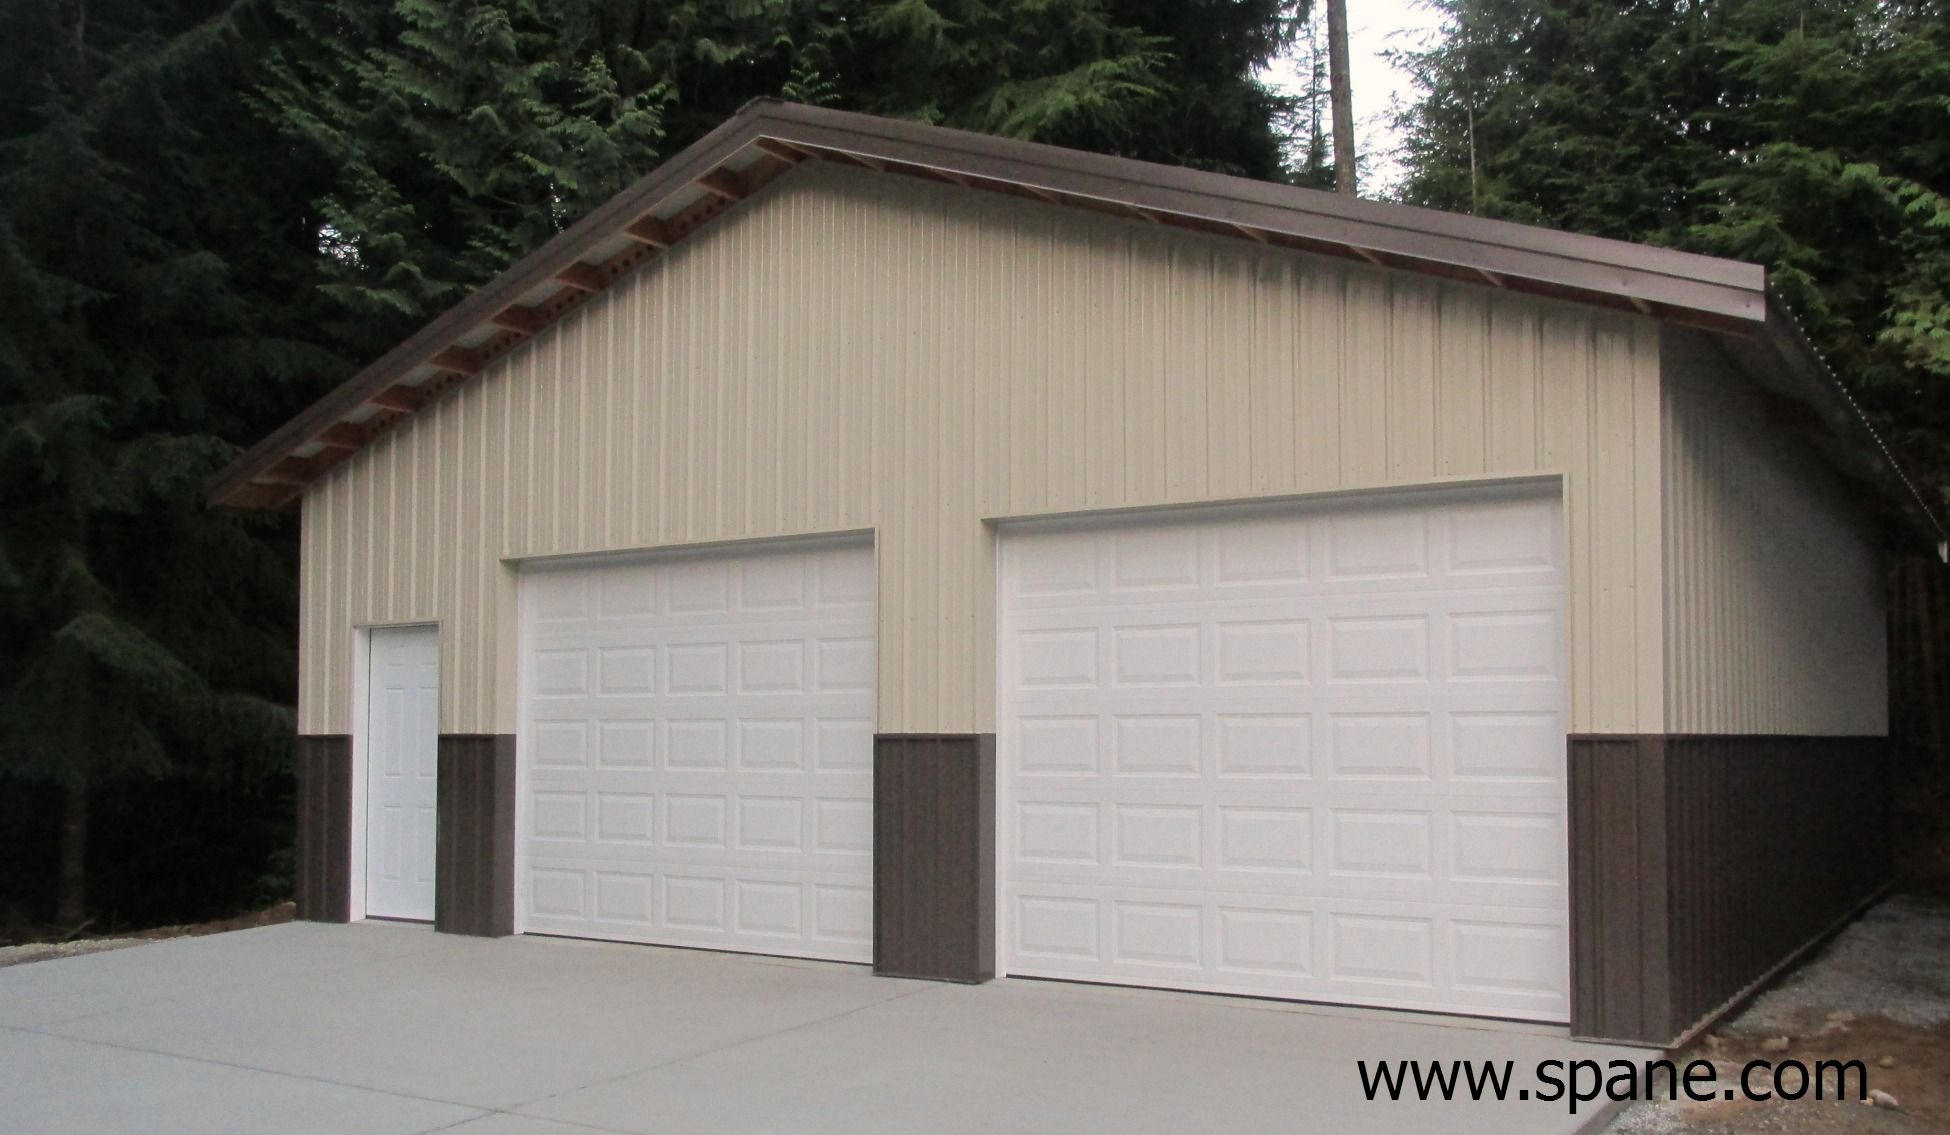 Garage Shop At Lake Cavanaugh Wa Constructed By Spane Buildings Of Mount Vernon Wa Garage Builders Outdoor Structures Garage